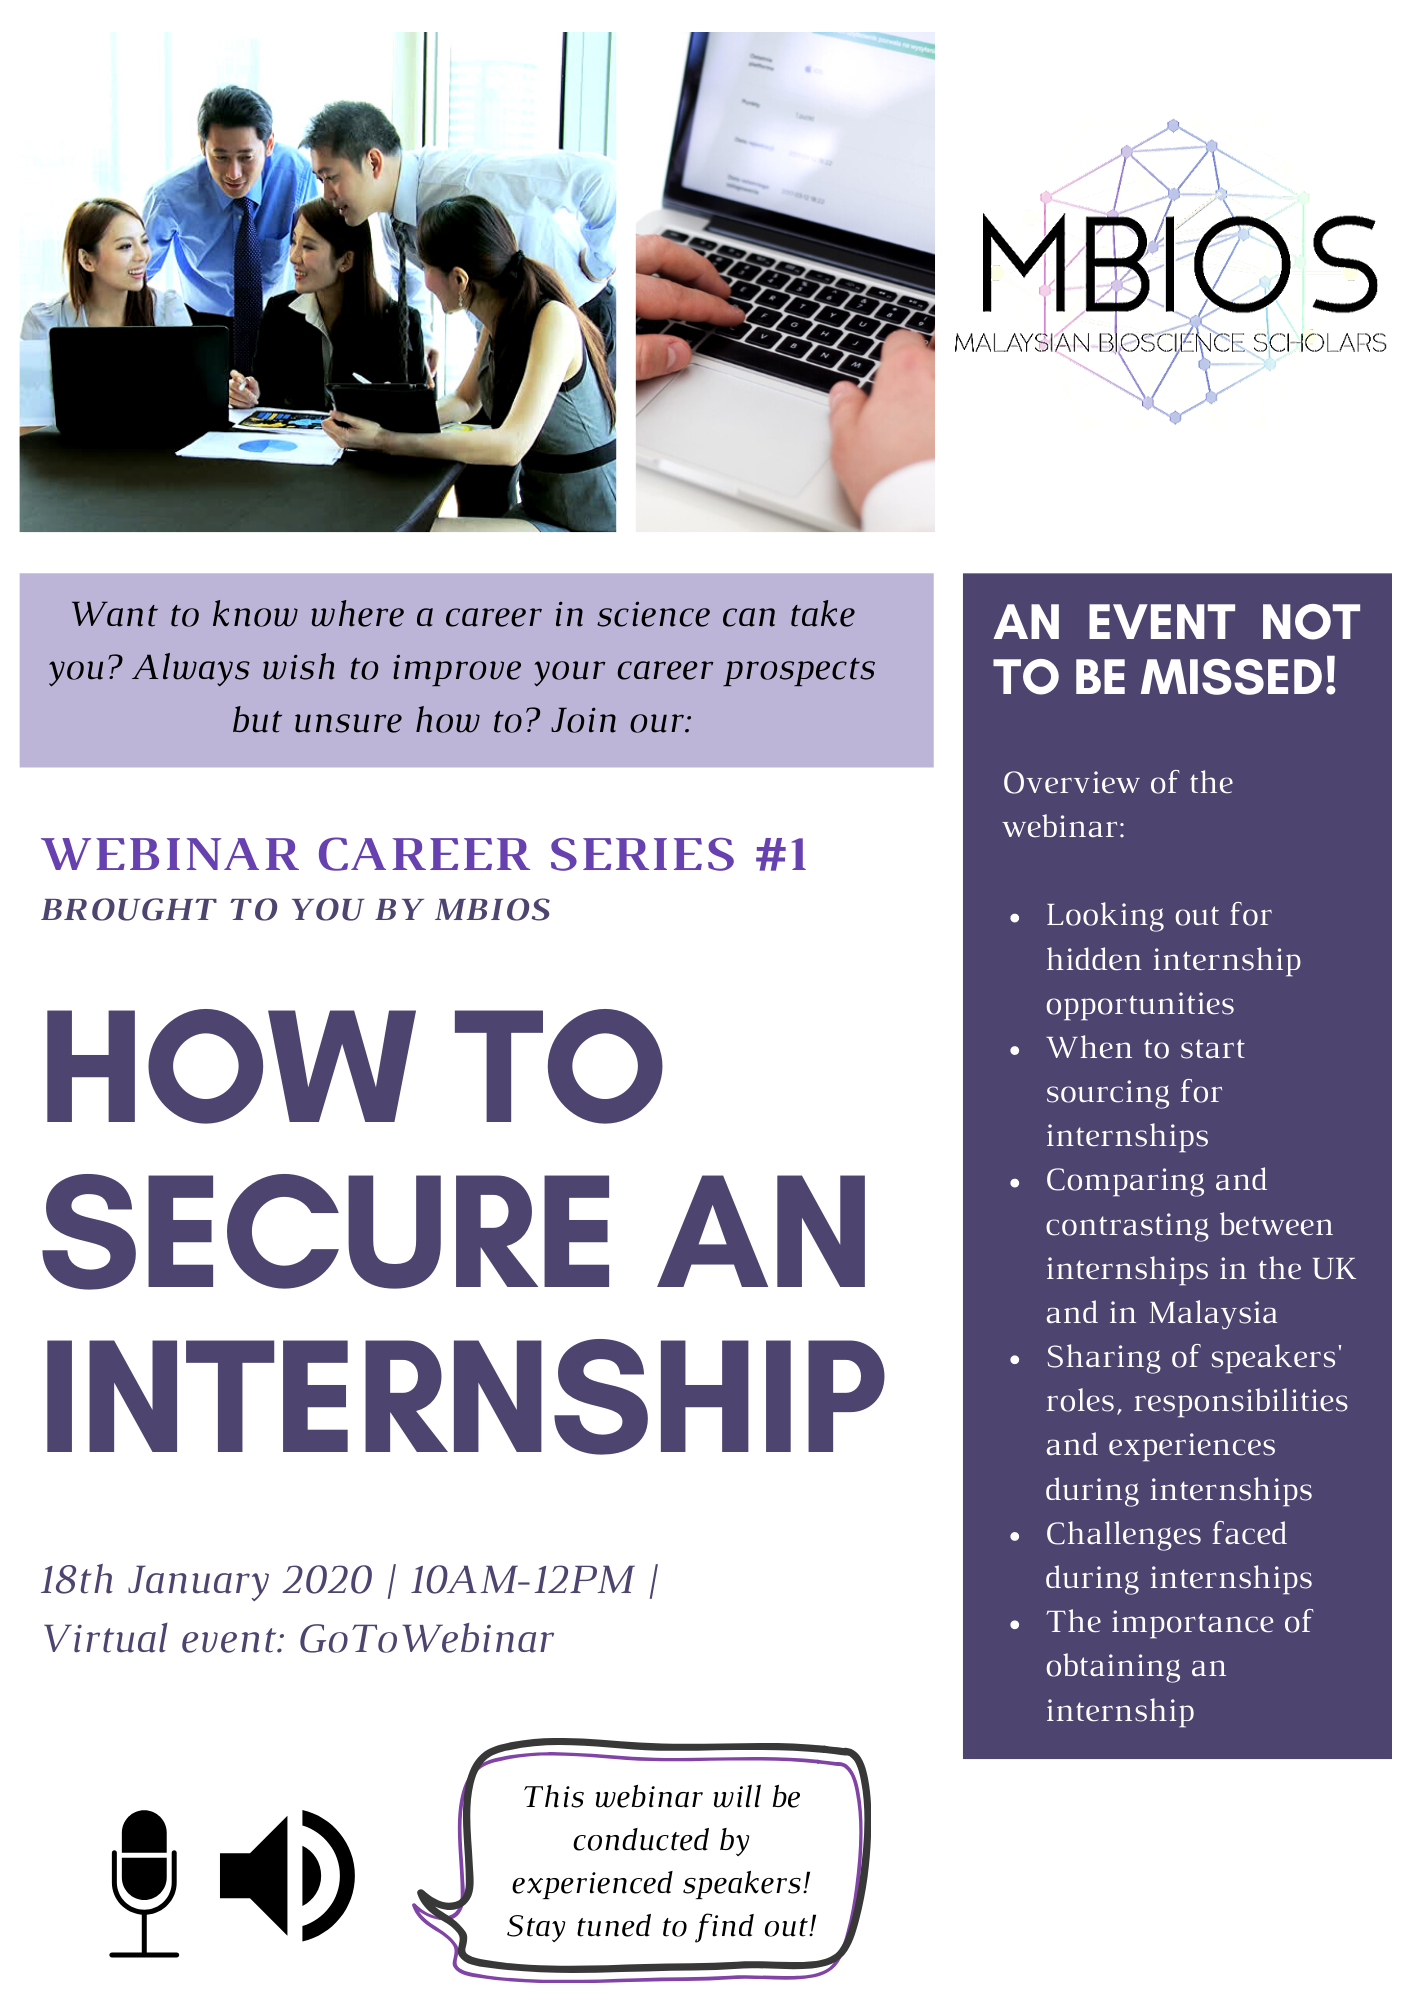 WEBINAR CAREER SERIES #1 Brought to you